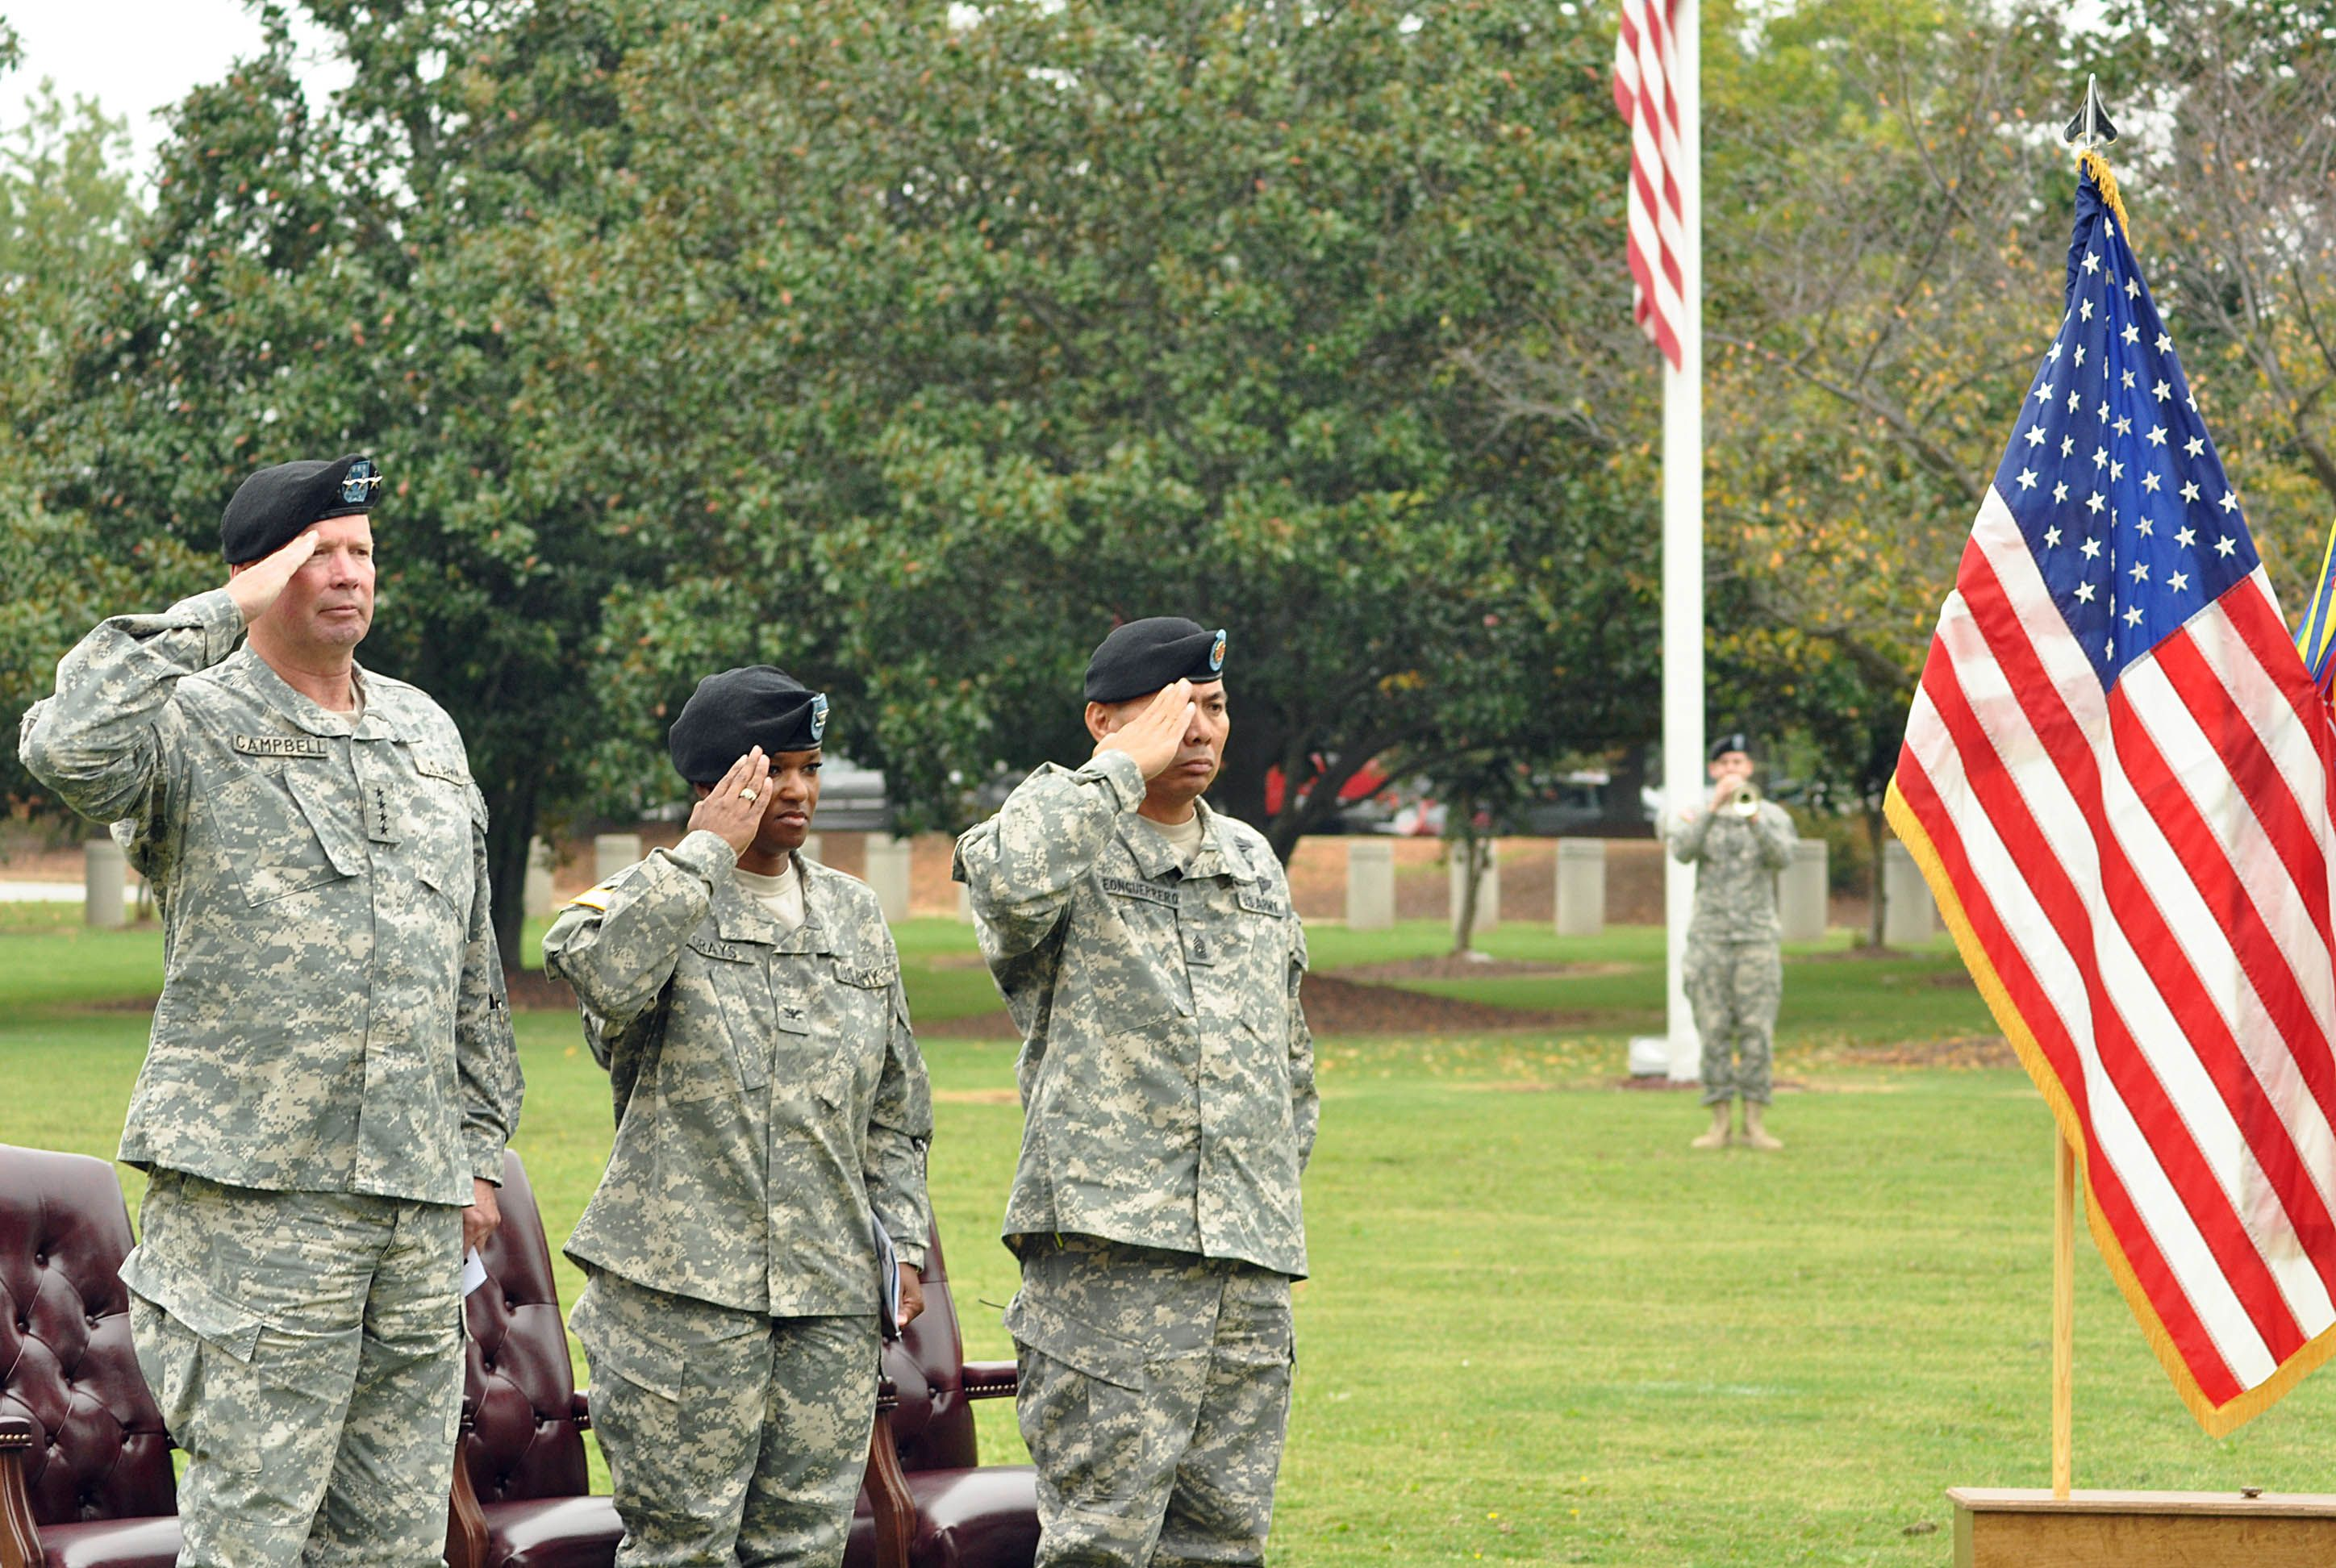 """""""Gen. Charles C. Campbell, U.S. Army Forces commanding general, Col. Deborah B. Grays, U.S. Army Garrison commander and Command Sgt. Maj. Kenny LeonGuerrero, USAG command sergeant major, render salutes to the United States flag as a bugler plays taps during the close of Patriot Day ceremonies held Sept. 11 at Fort McPherson. Fort McPherson and Fort Gillem joined the rest of the nation in honoring the victims of the terrorist attacks that took place Sept. 11, 2001."""" — Wikimedia Commons"""